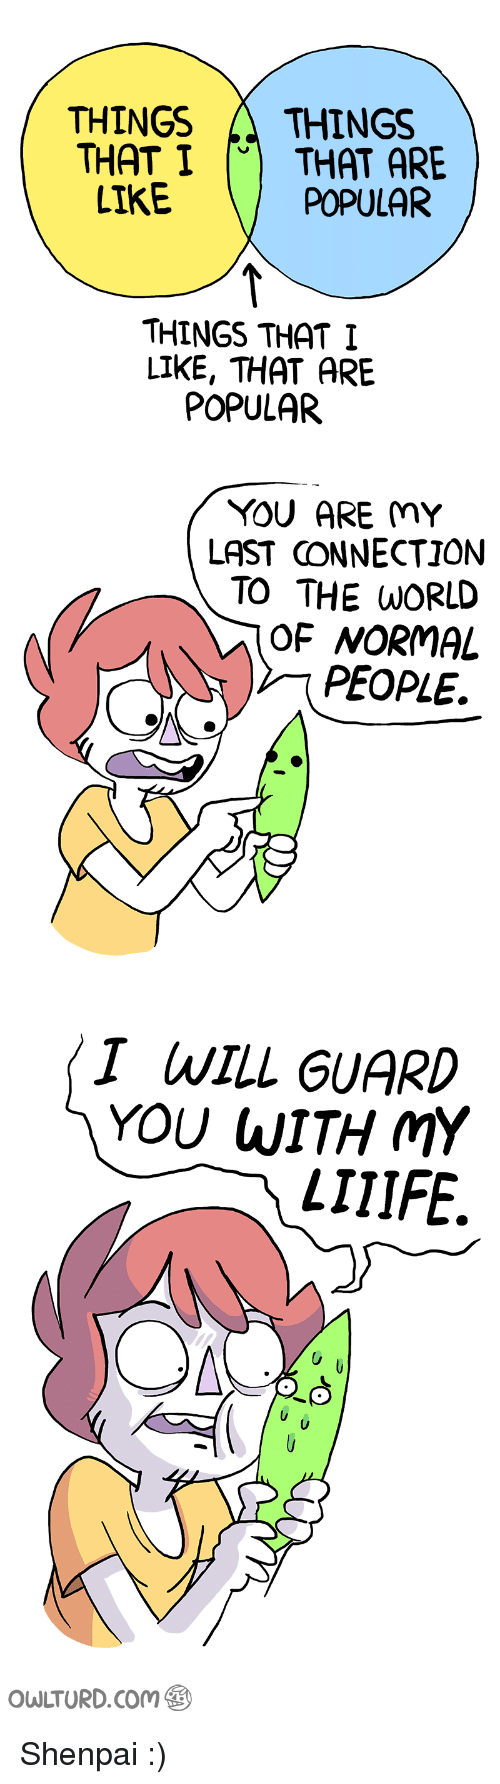 World, Com, and Will: THINGS A THINGS  THAT I CTHAT ARE  POPULAR  LIKE  THINGS THAT I  LIKE, THAT ARE  POPULAR  YOU ARE MY  LAST CONNECTION  TO THE WORLD  OF NORMAL  PEOPLE.  〈 I WILL GUARD  YOU WITH MY  LIIIFE.  OWLTURD.Com Shenpai :)